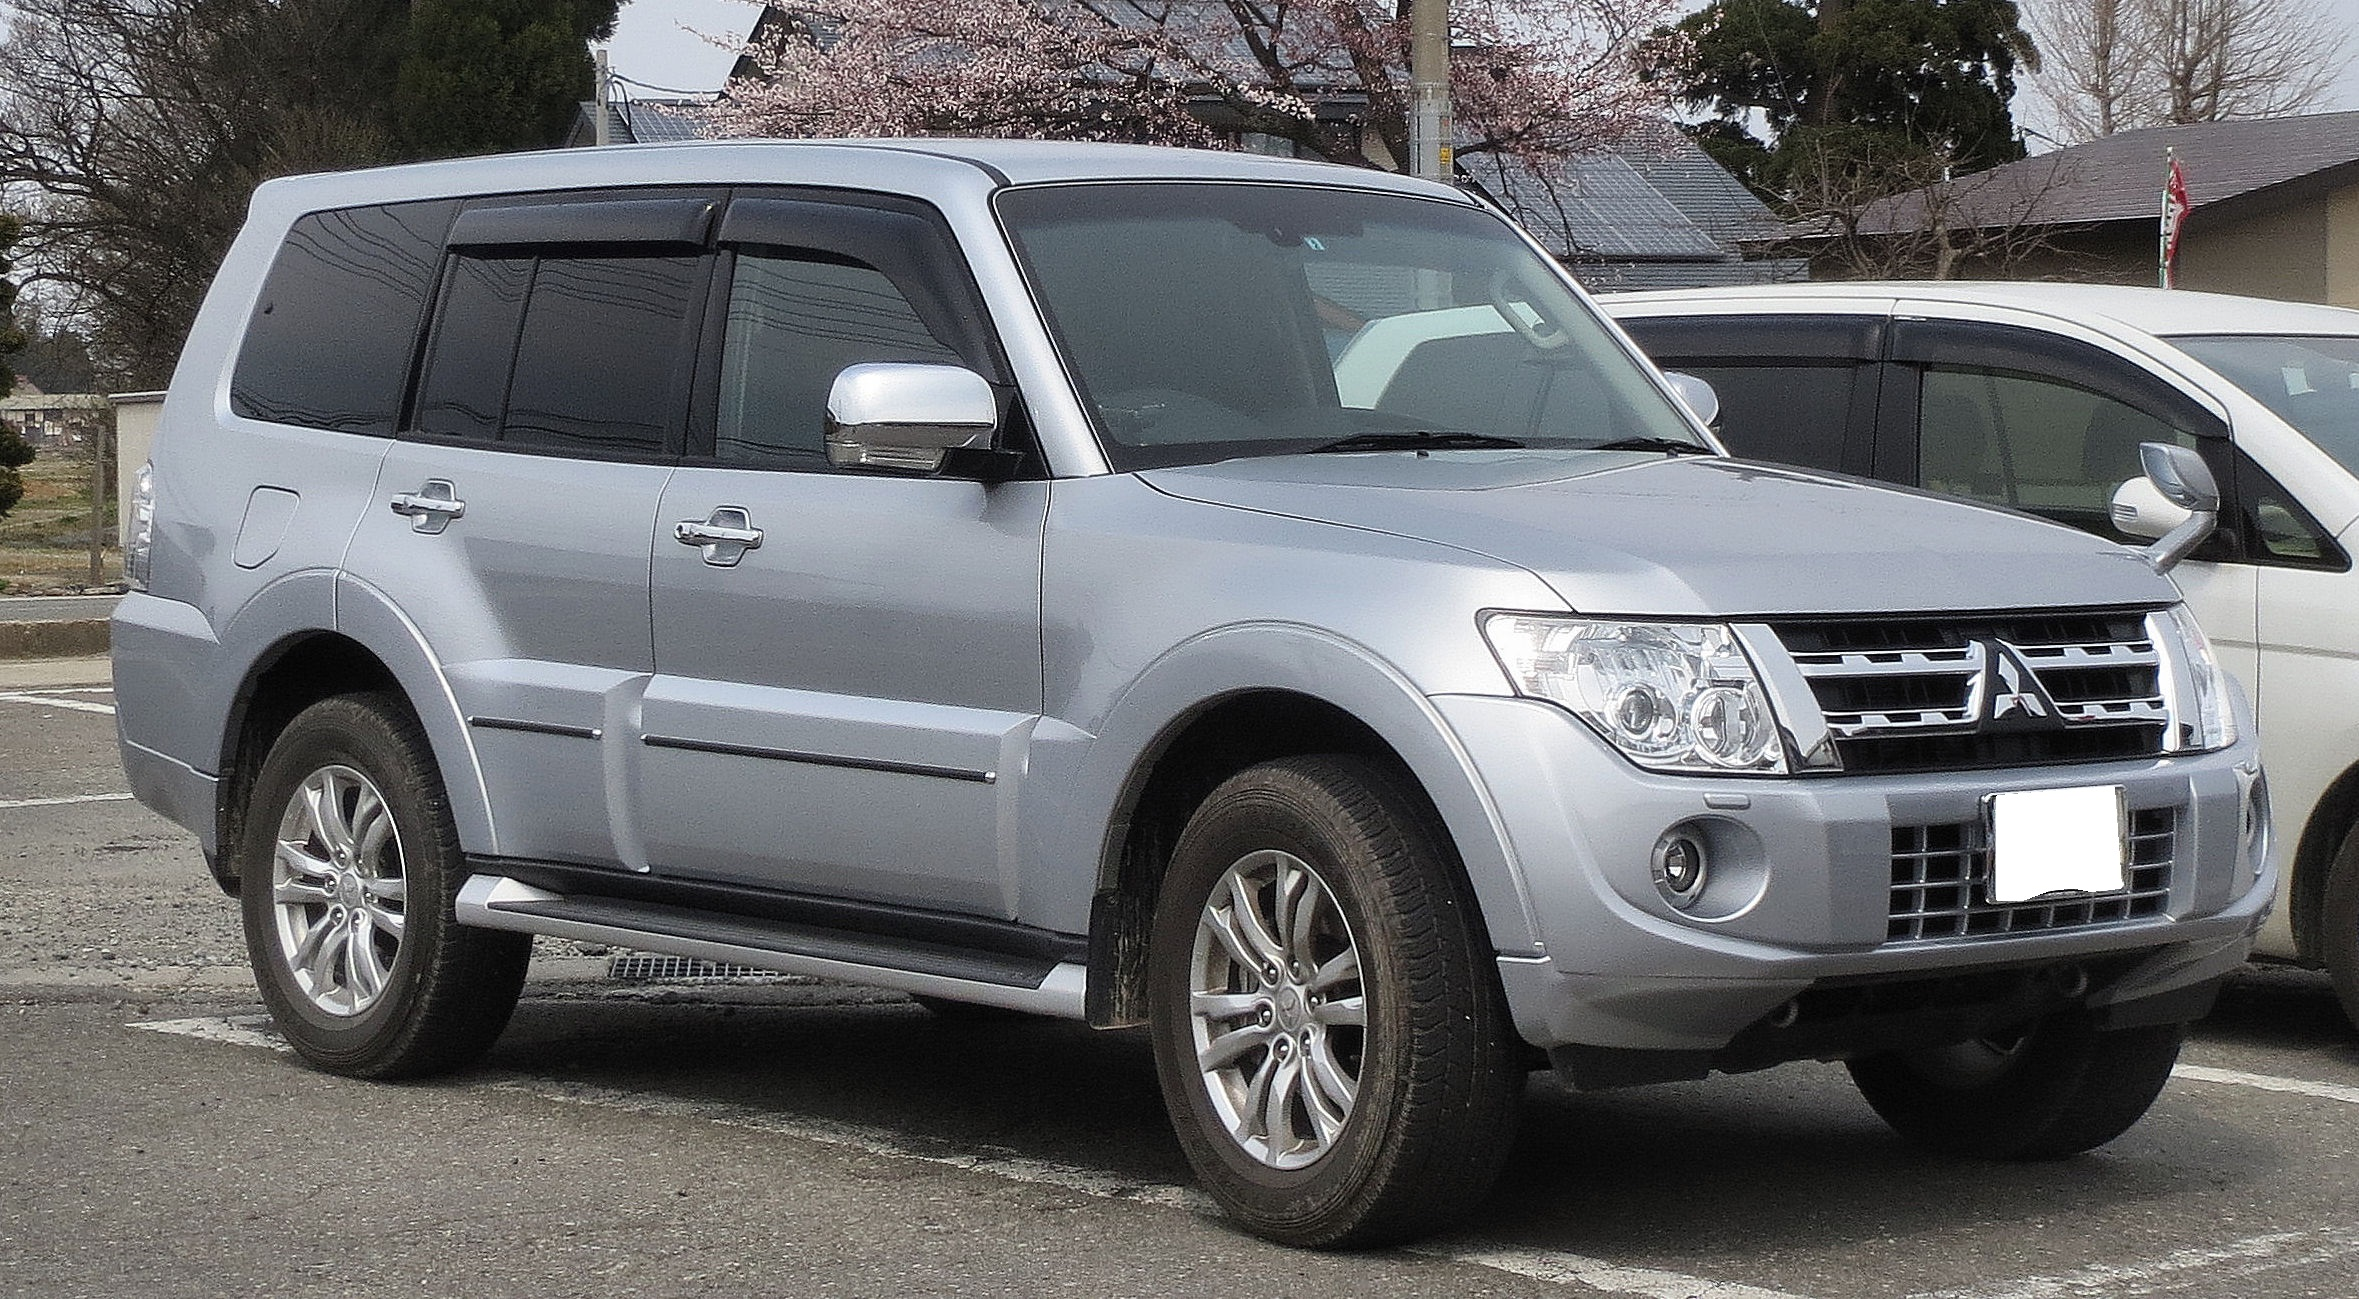 Wspaniały File:Mitsubishi V98 Pajero Long Body Super Exceed 3200 DI-D.JPG IE41